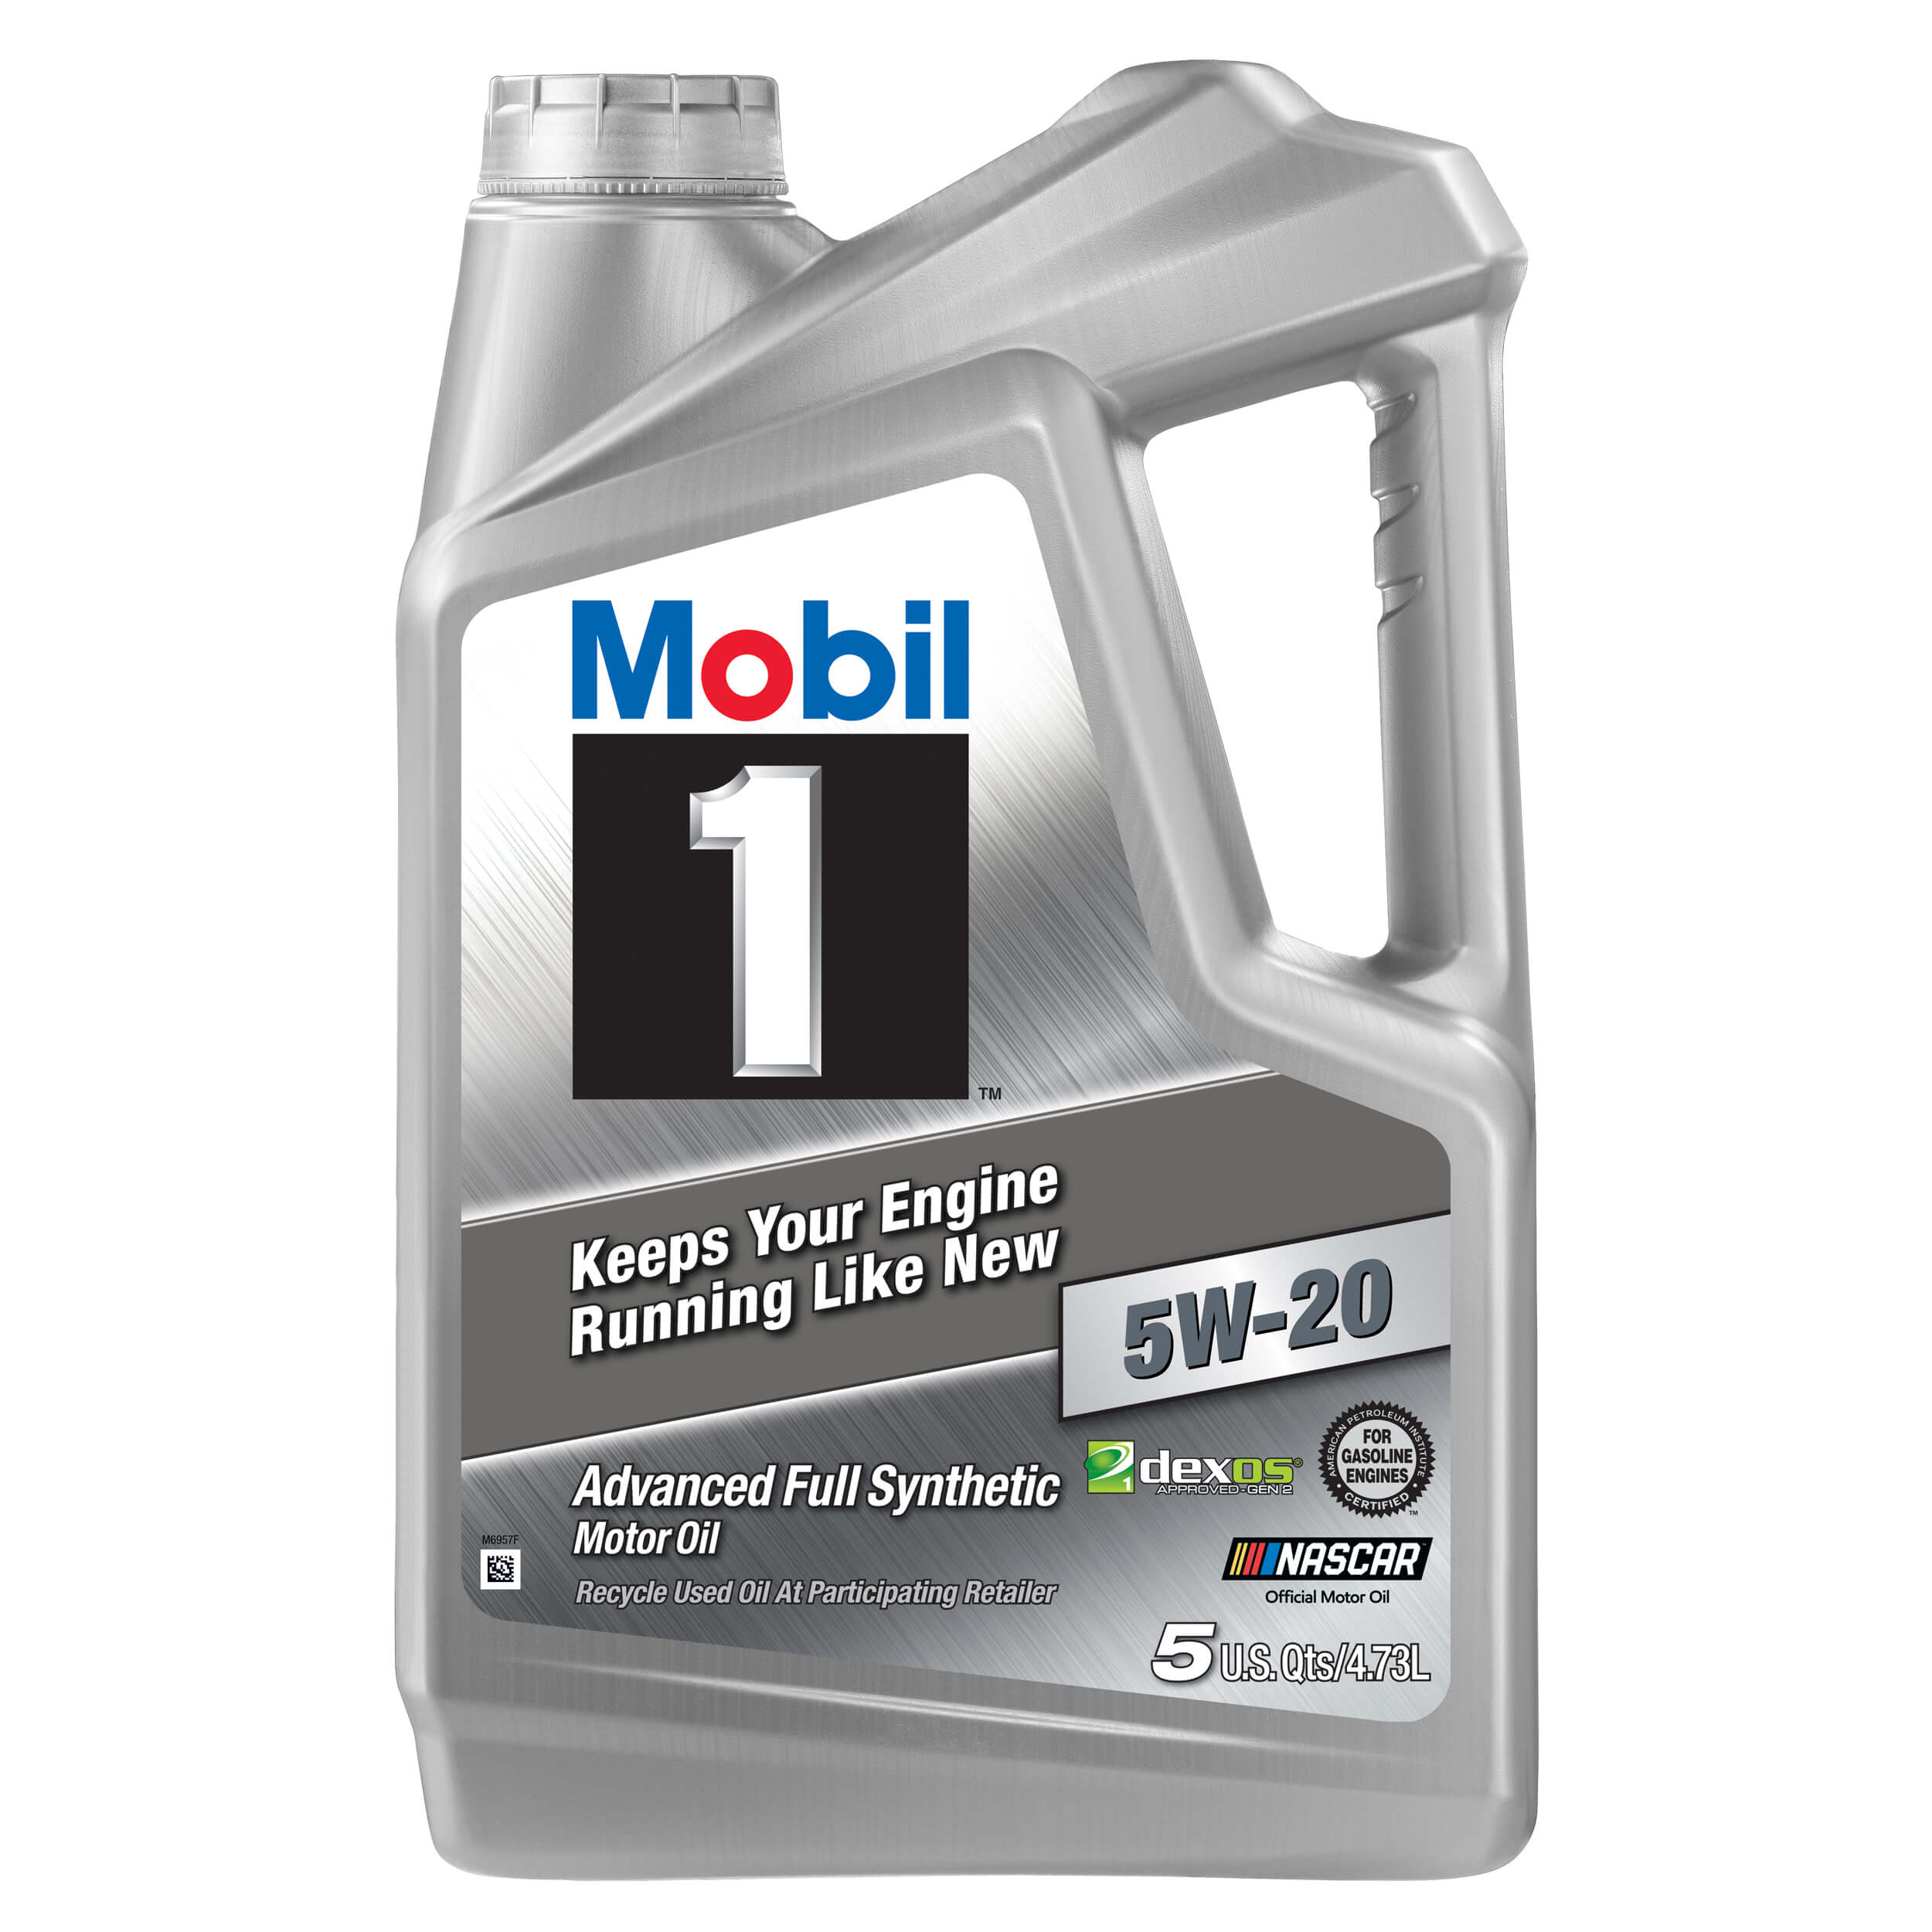 Mobil 1 Advanced Full Synthetic Motor Oil 5W-30, 5 Quart - Walmart